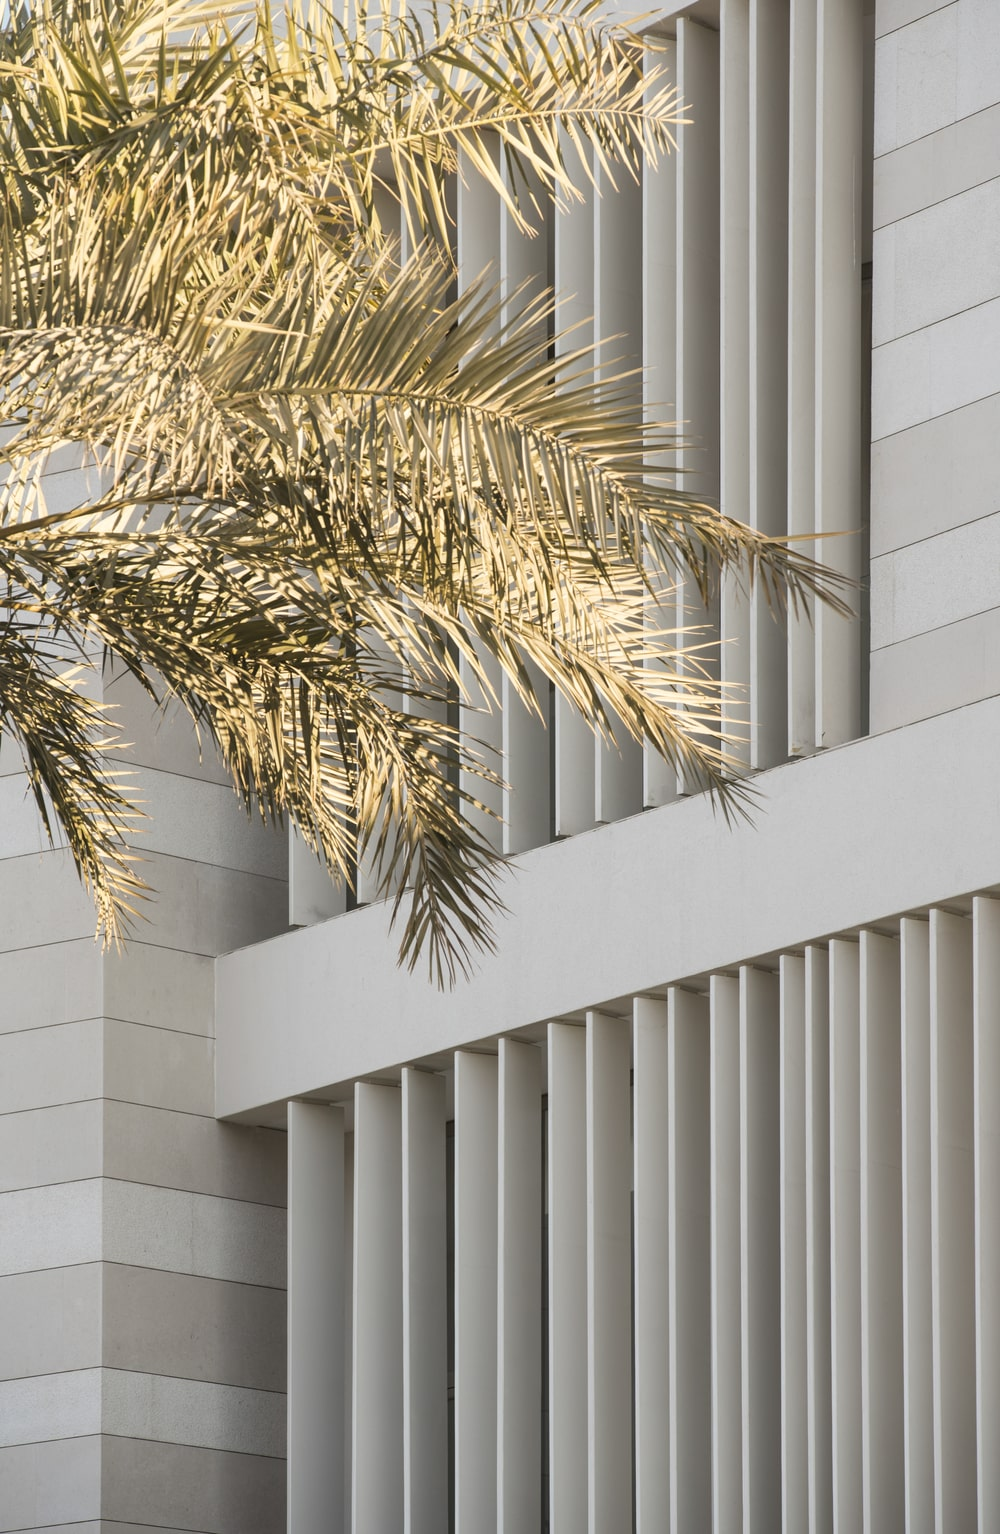 This is a closer look at the vertical panels of the house and how the tropical trees complement them.